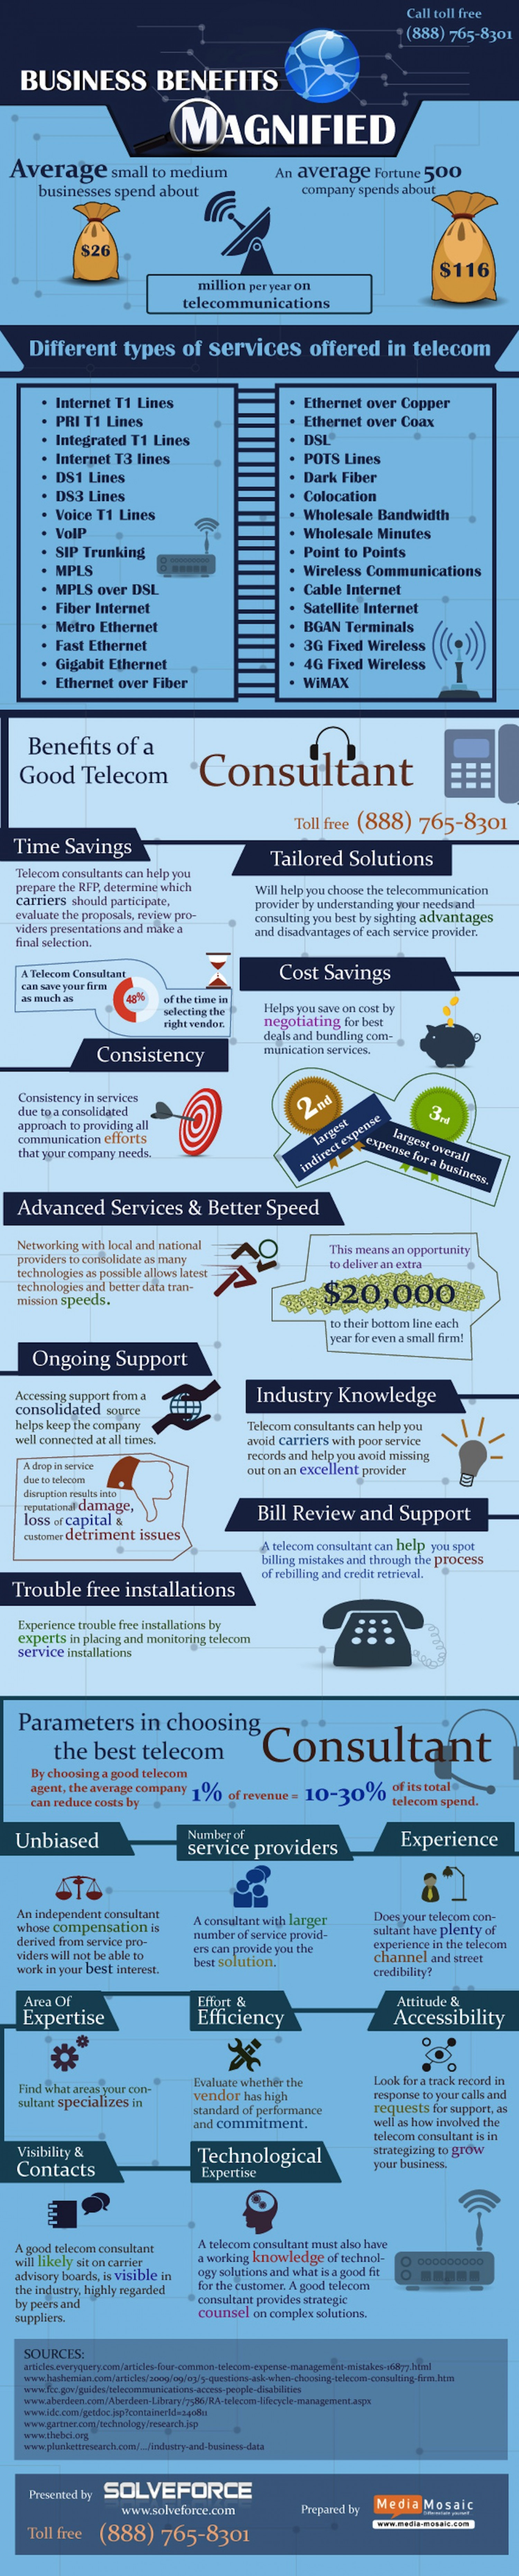 Business Benefits Magnified Telecommunications Infographic